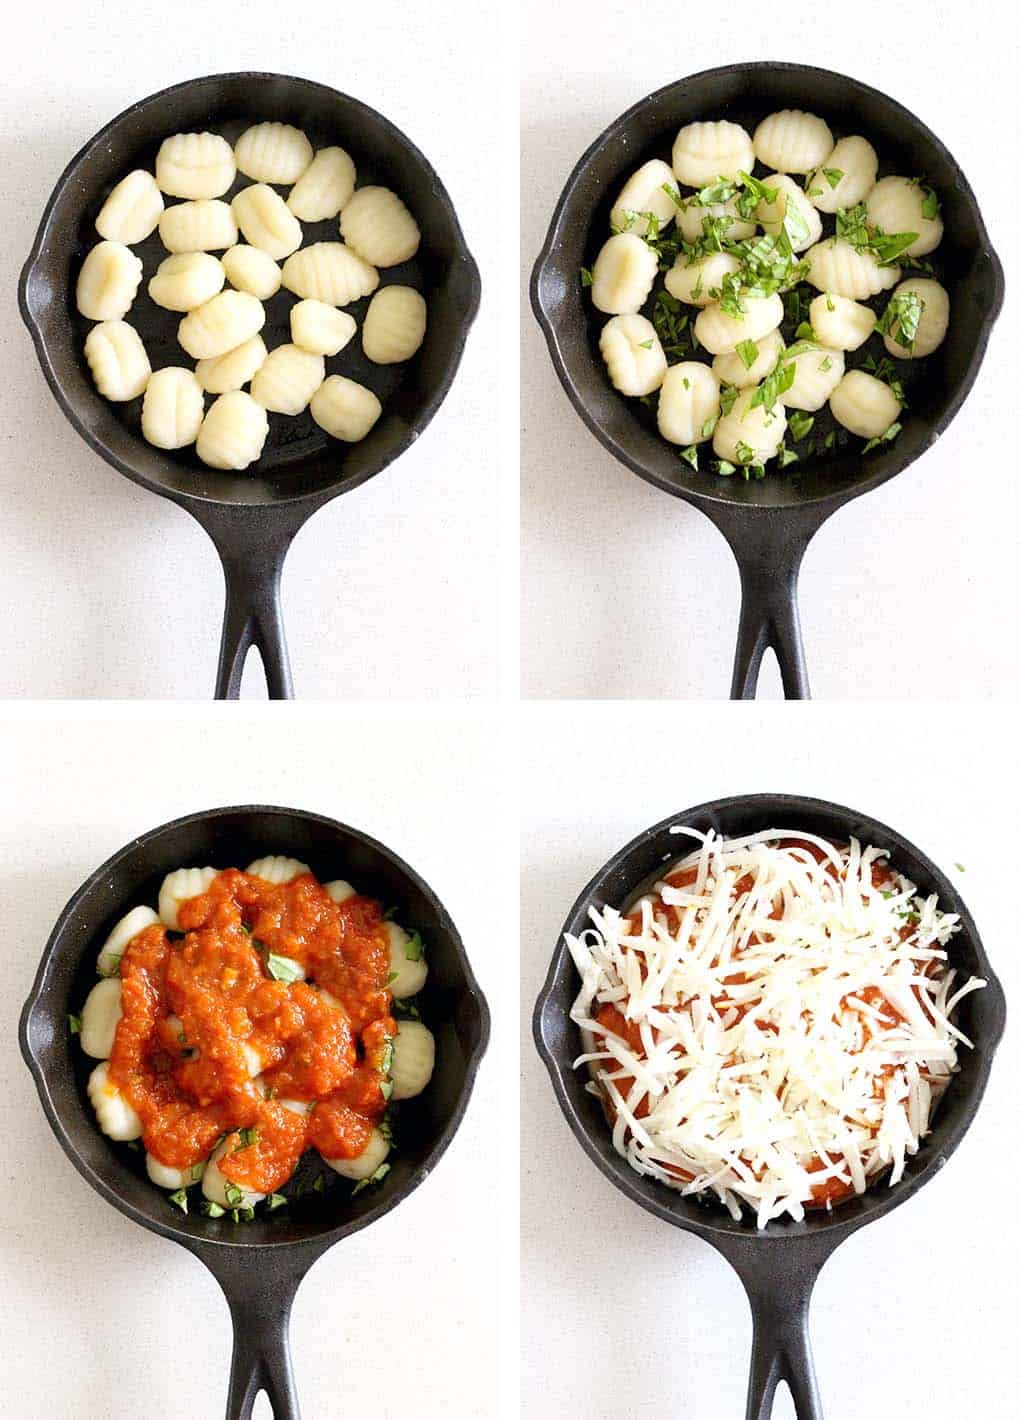 Baked Gnocchi is a quick and easy weeknight meal- cheesy, pillowy gnocchi smothered in marinara sauce- the ultimate Italian comfort food with only FOUR pre-made ingredients!